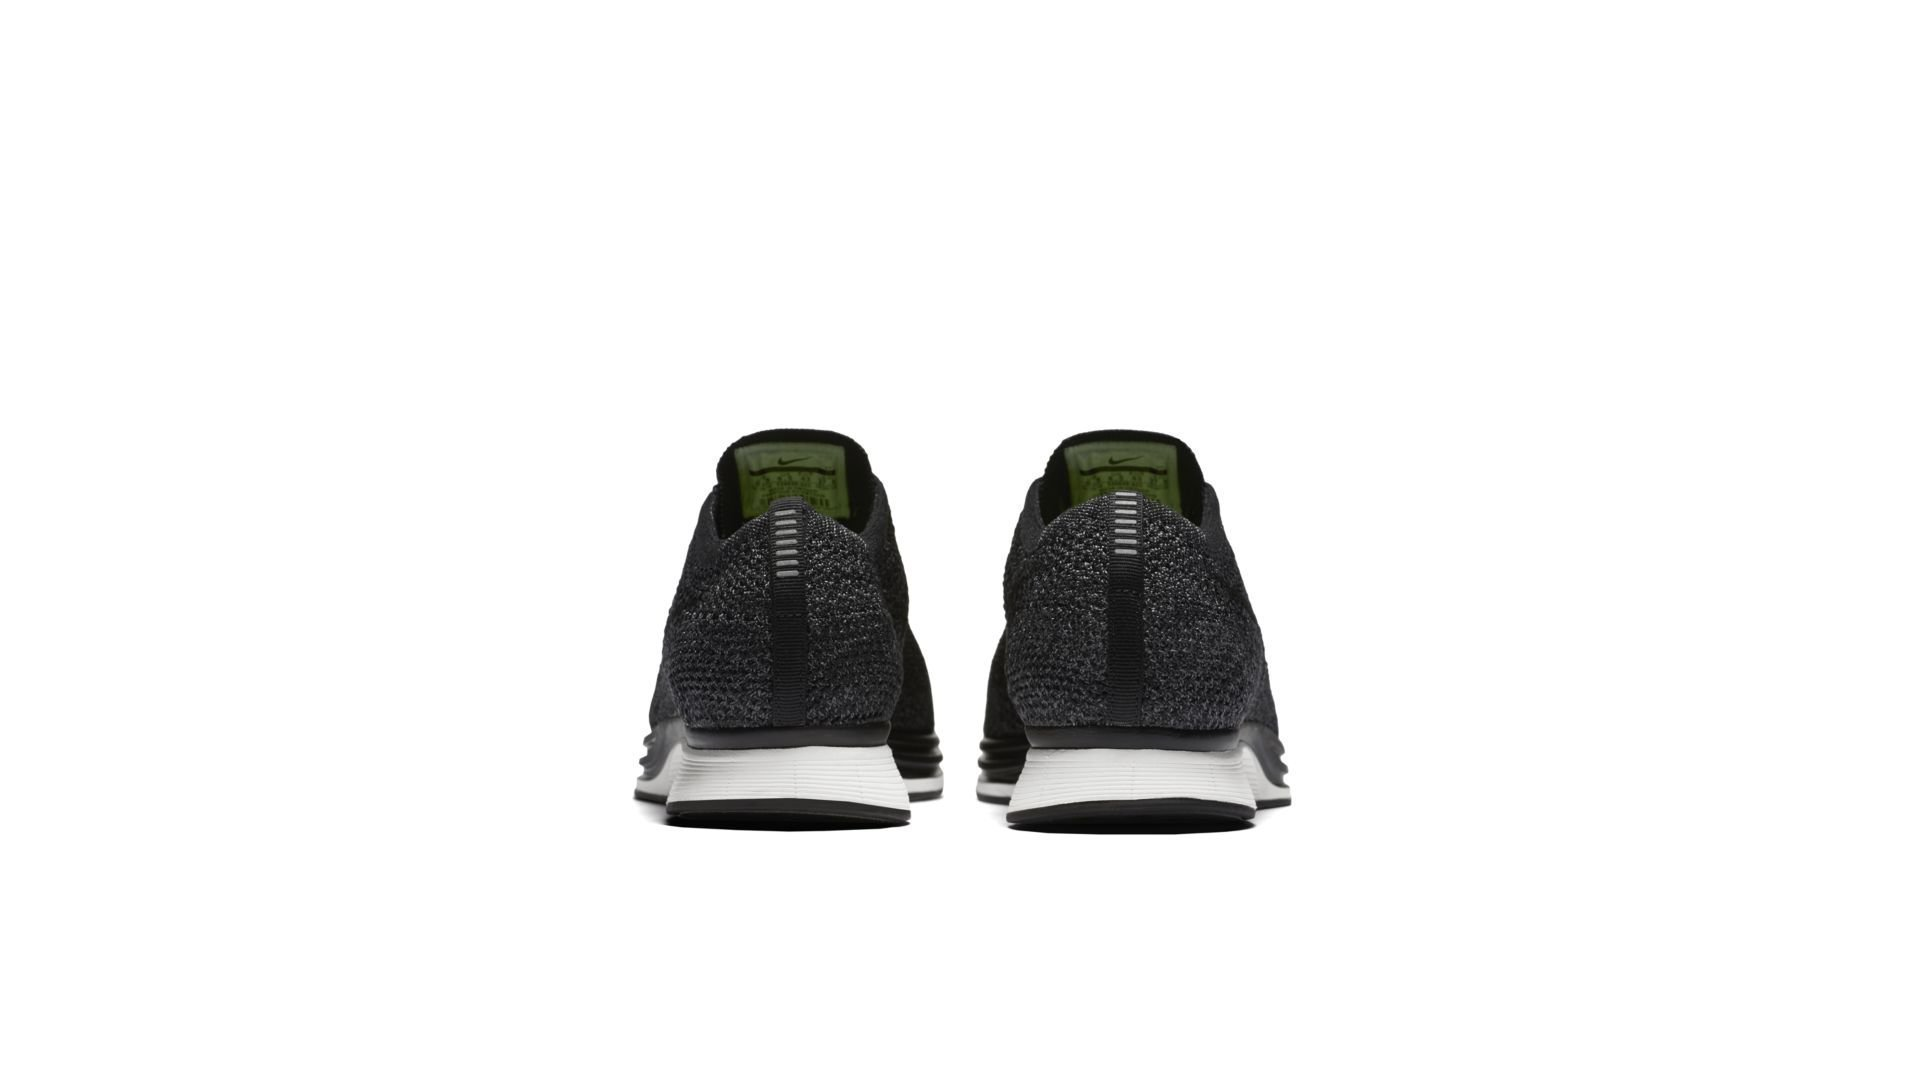 Nike Flyknit Racer Knit by Night (526628-005)